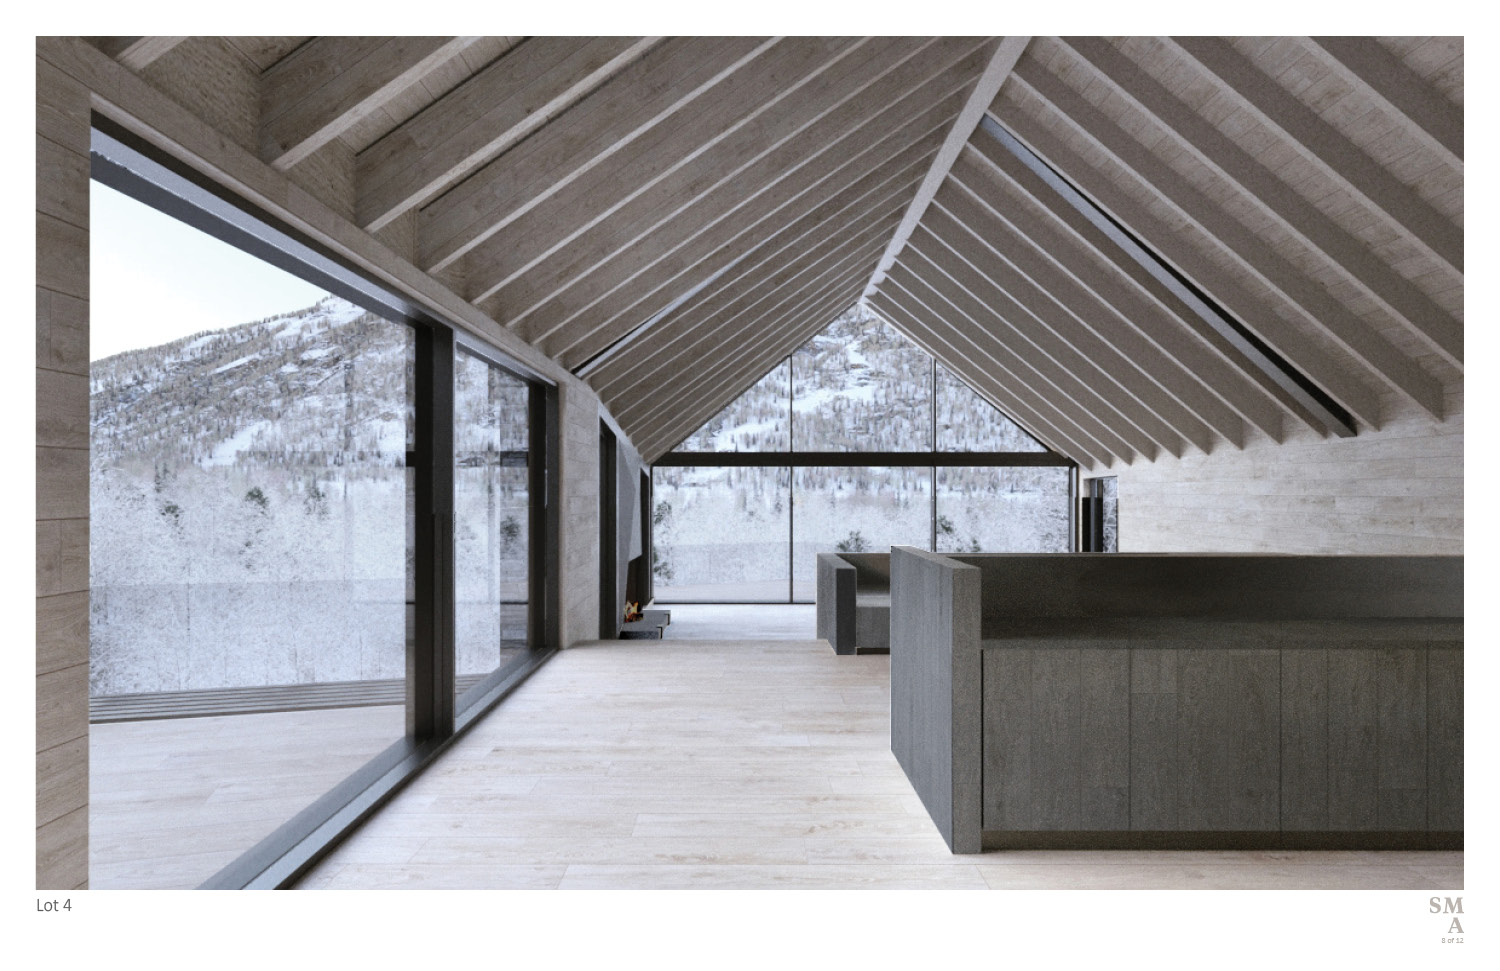 Lot 4 - Interior View: West Wing volume housing public spaces of this nestled mountain home. SMA Design Team & Consultants